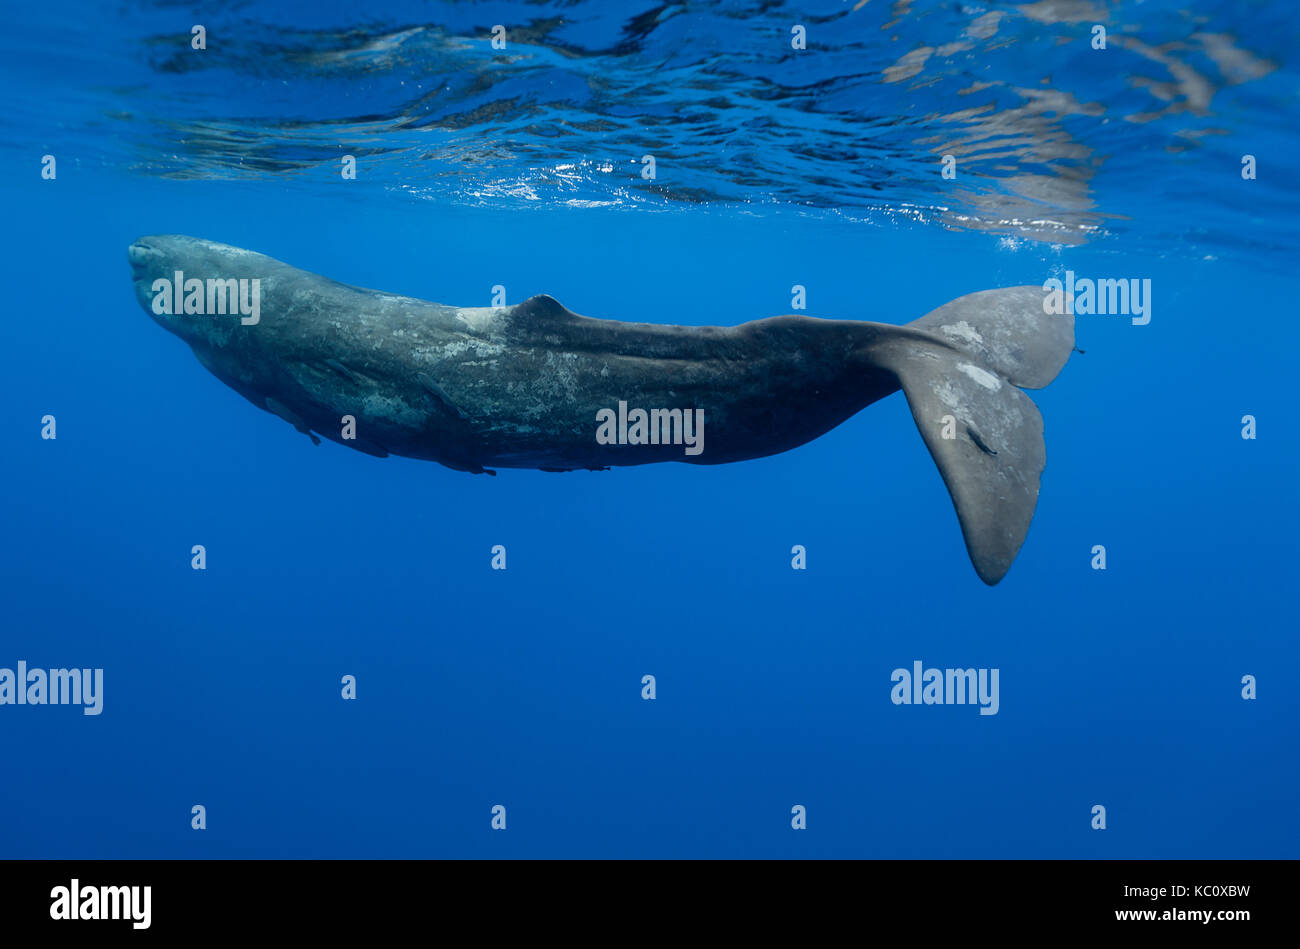 Sperm whale swimming, Indian Ocean, Mauritius. - Stock Image